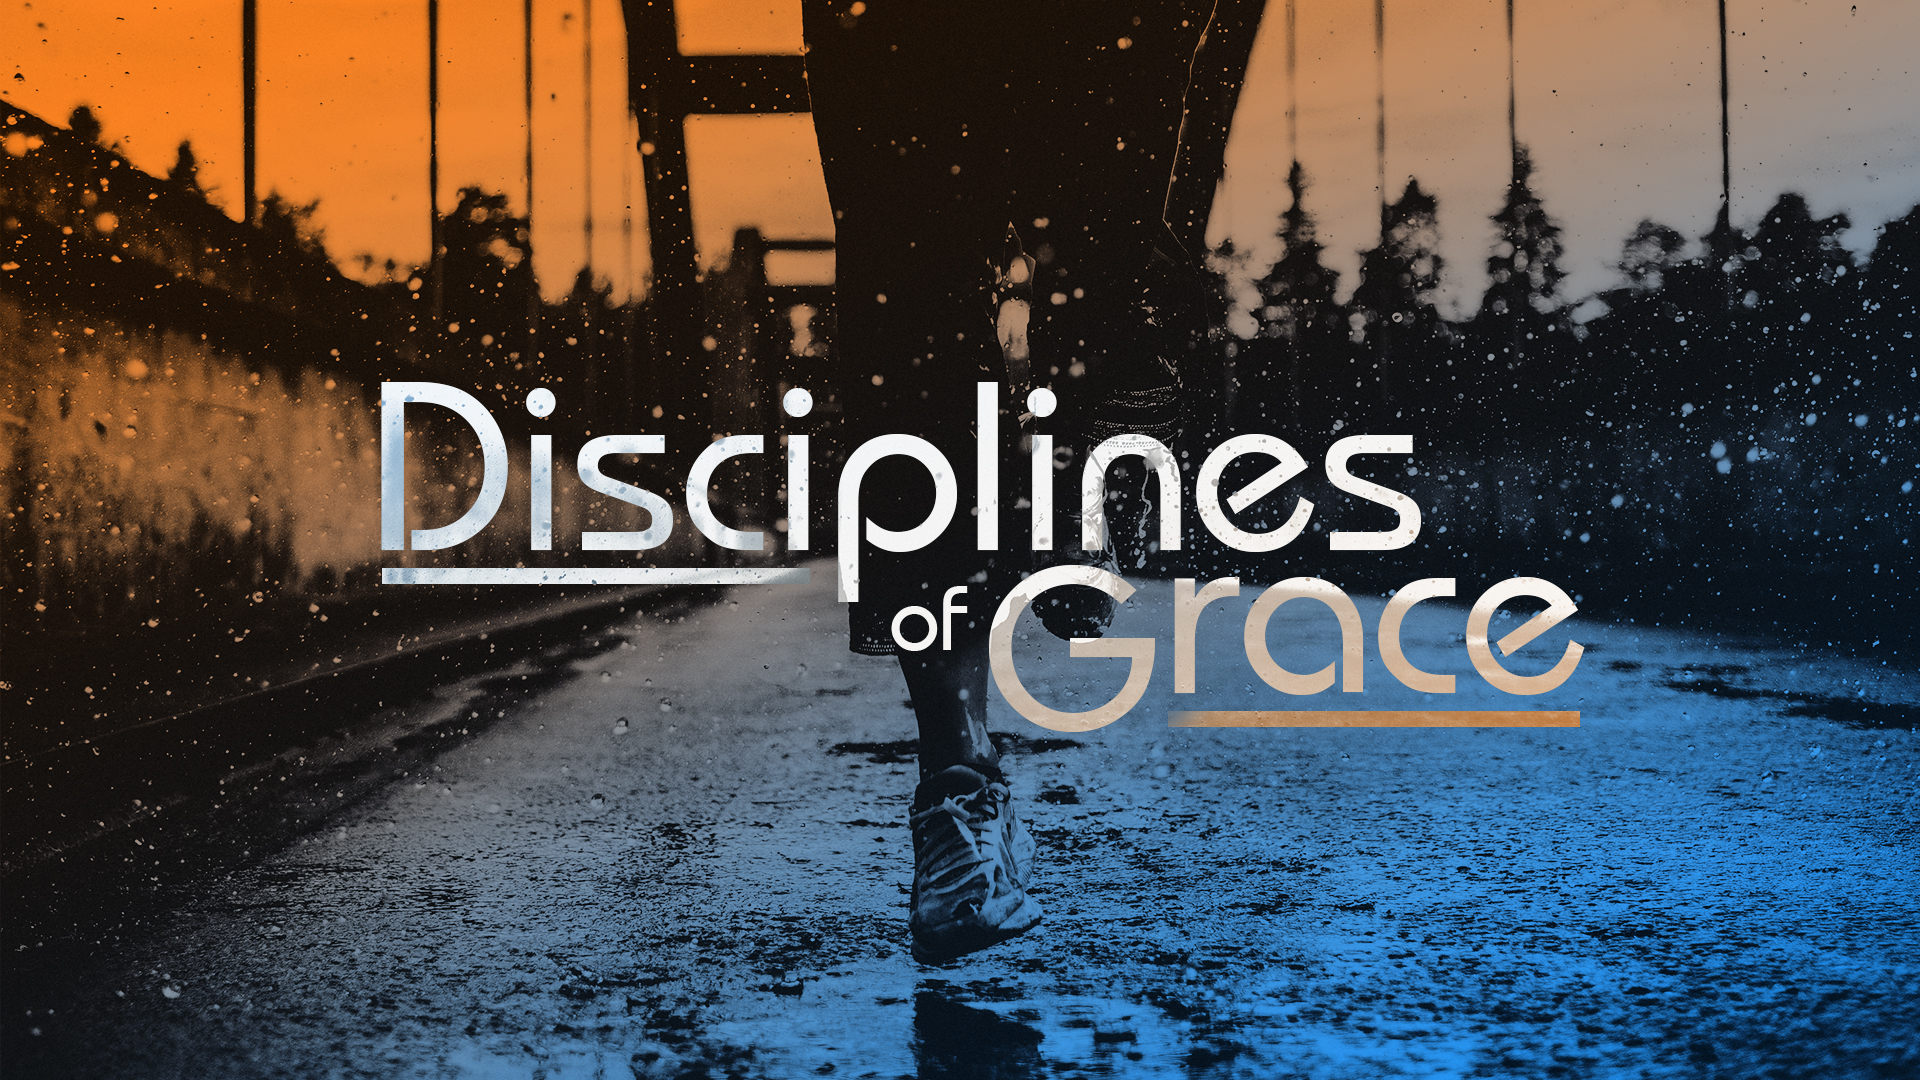 DISCIPLINES OF GRACE - The Discipline of Adversity